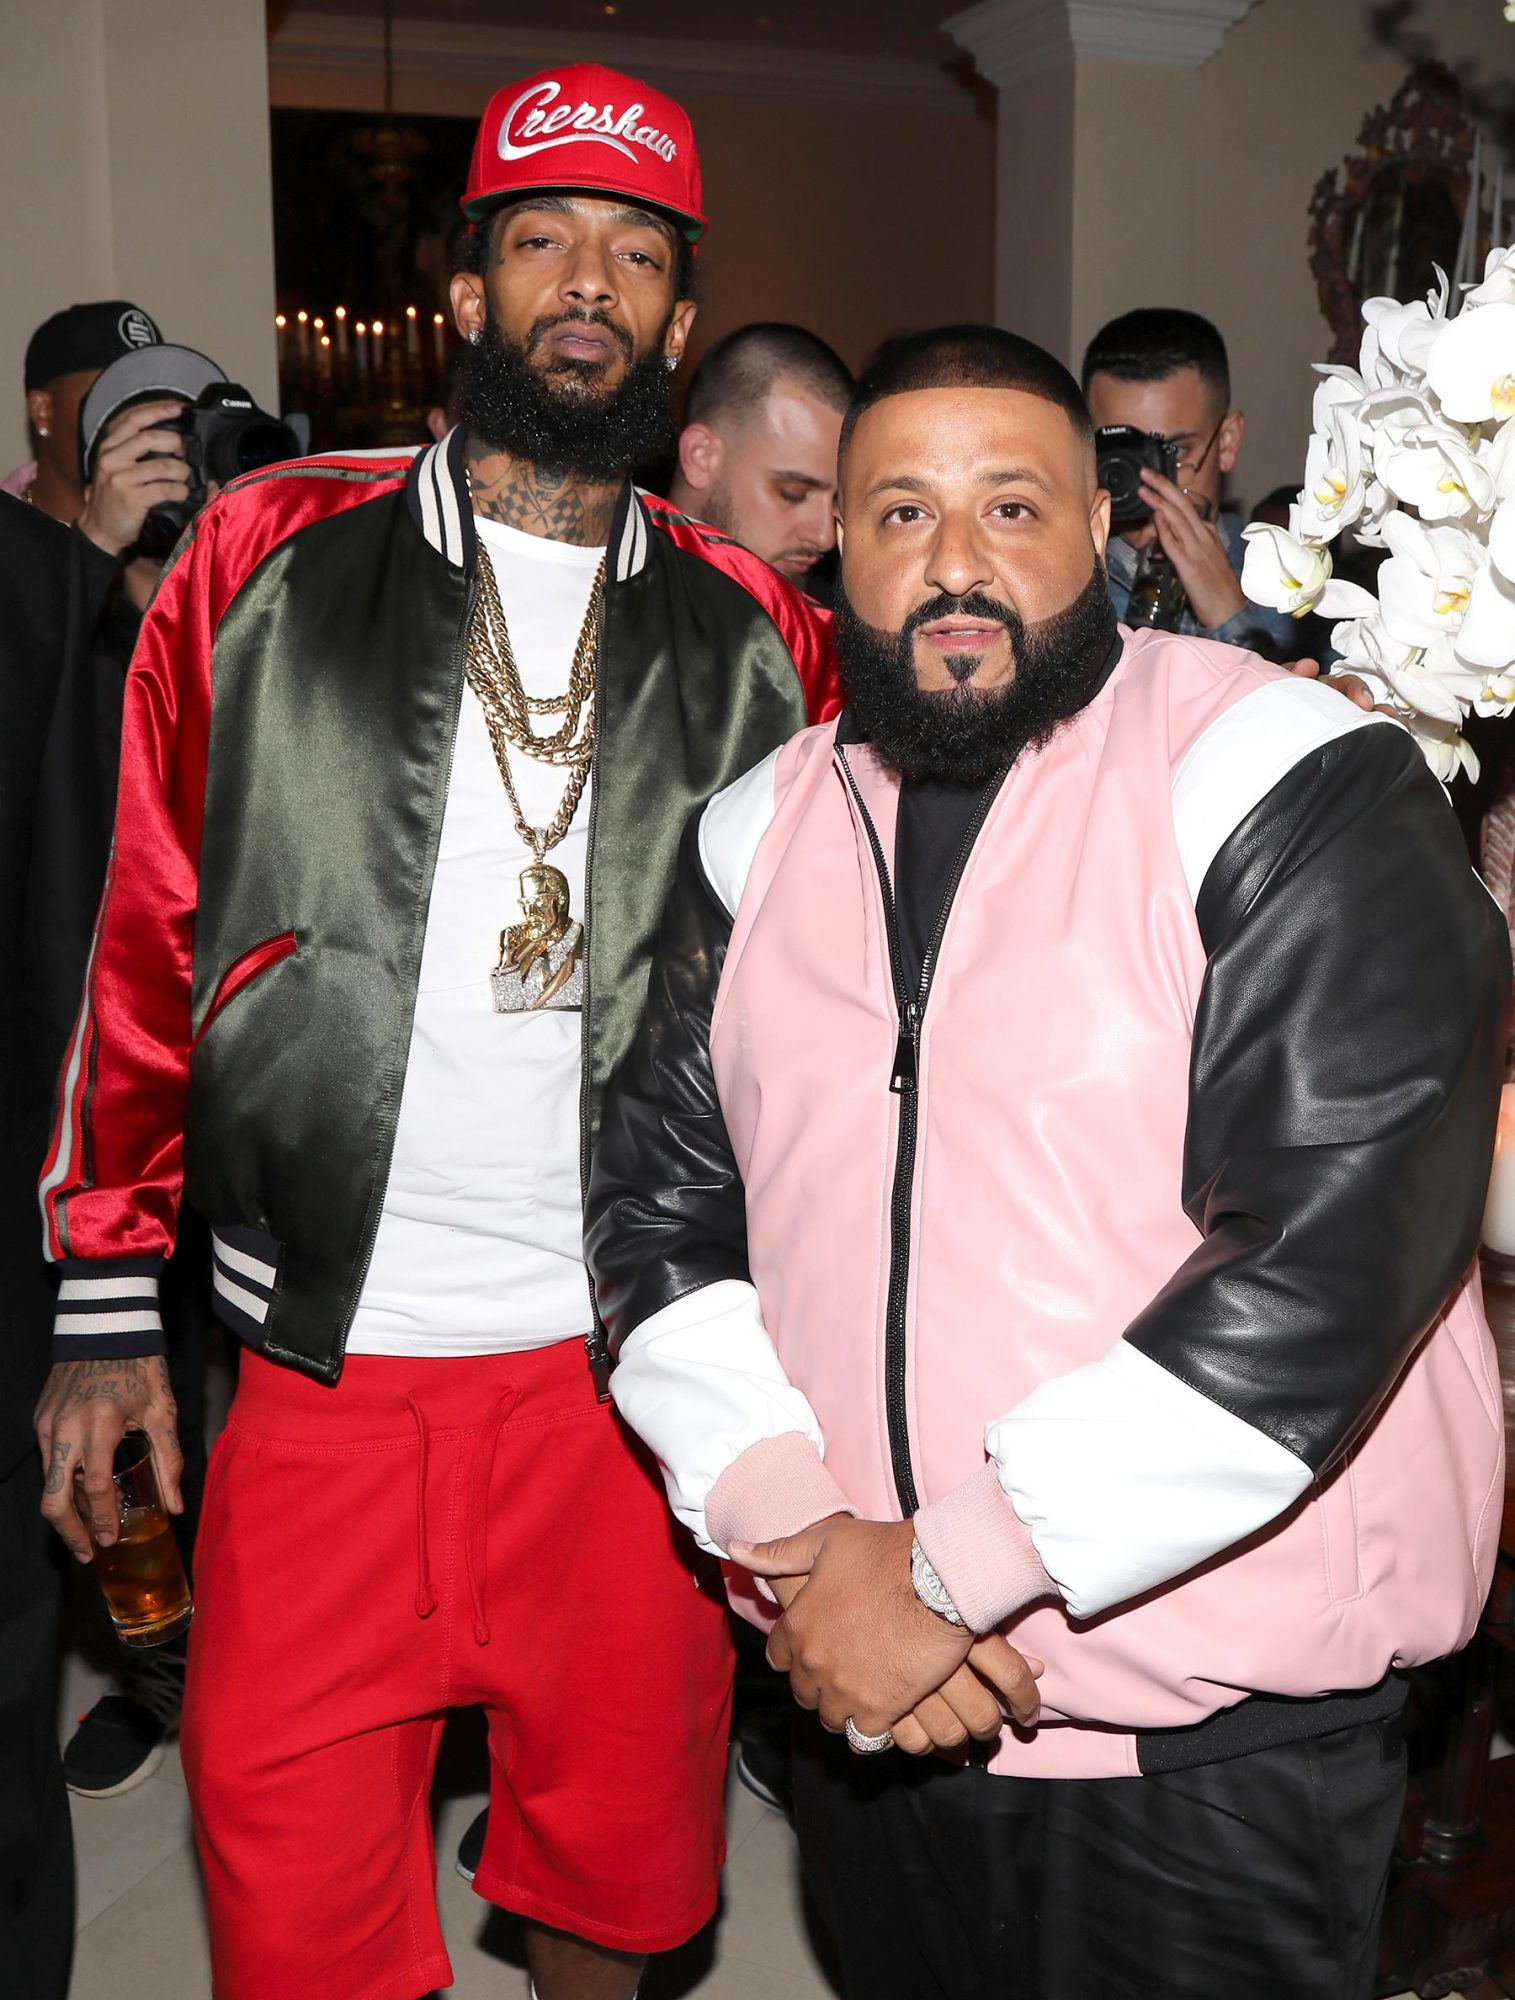 BEVERLY HILLS, CA - DECEMBER 02: Nipsey Hussle and DJ Khaled attend The Four cast Sean Diddy Combs, Fergie, and Meghan Trainor Host DJ Khaled's Birthday Presented by CÎROC and Fox on December 2, 2017 in Beverly Hills, California. (Photo by Jerritt Clark/Getty Images for Ciroc)